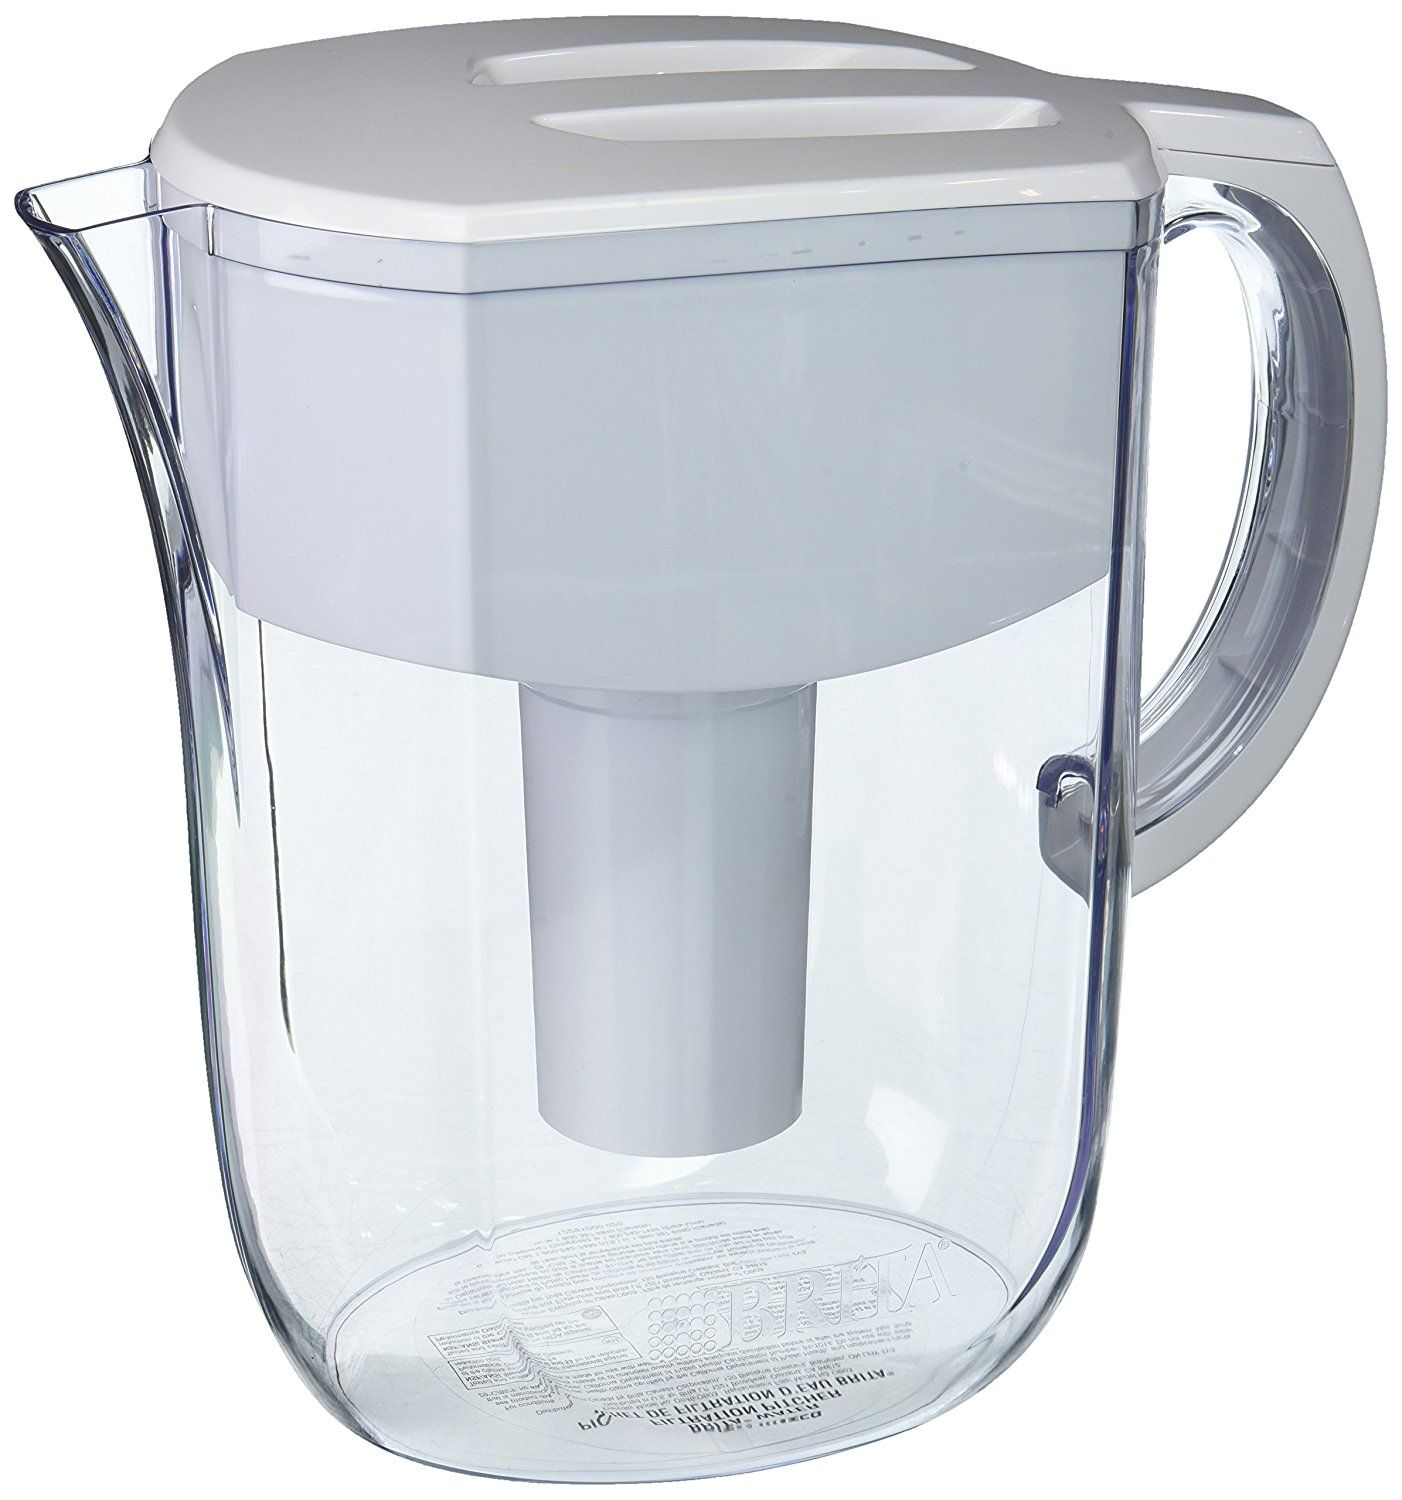 Amazon.com: Brita Large 10 Cup Everyday Water Pitcher with Filter ...